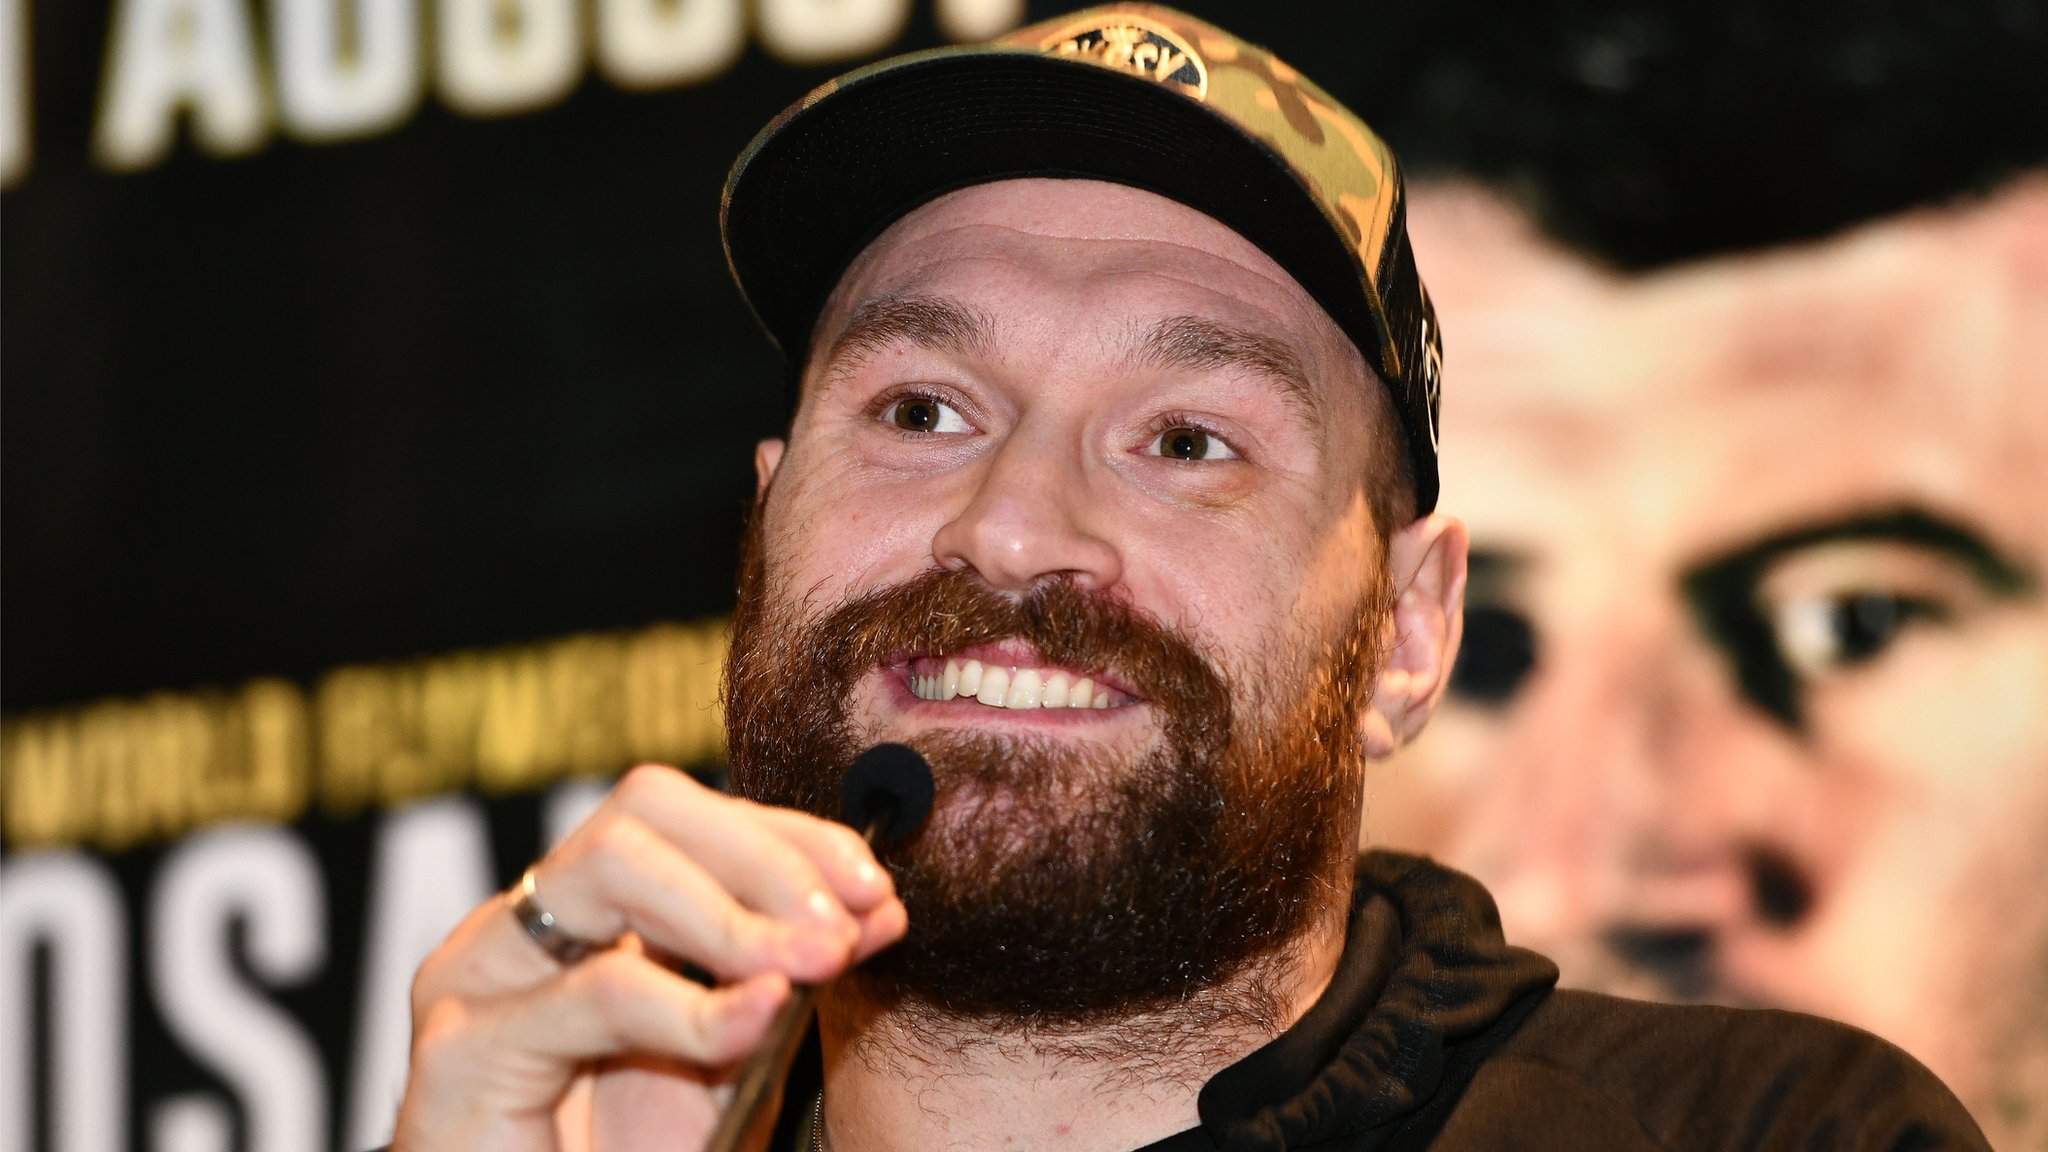 'The old Tyson Fury is gone, never to be seen again'